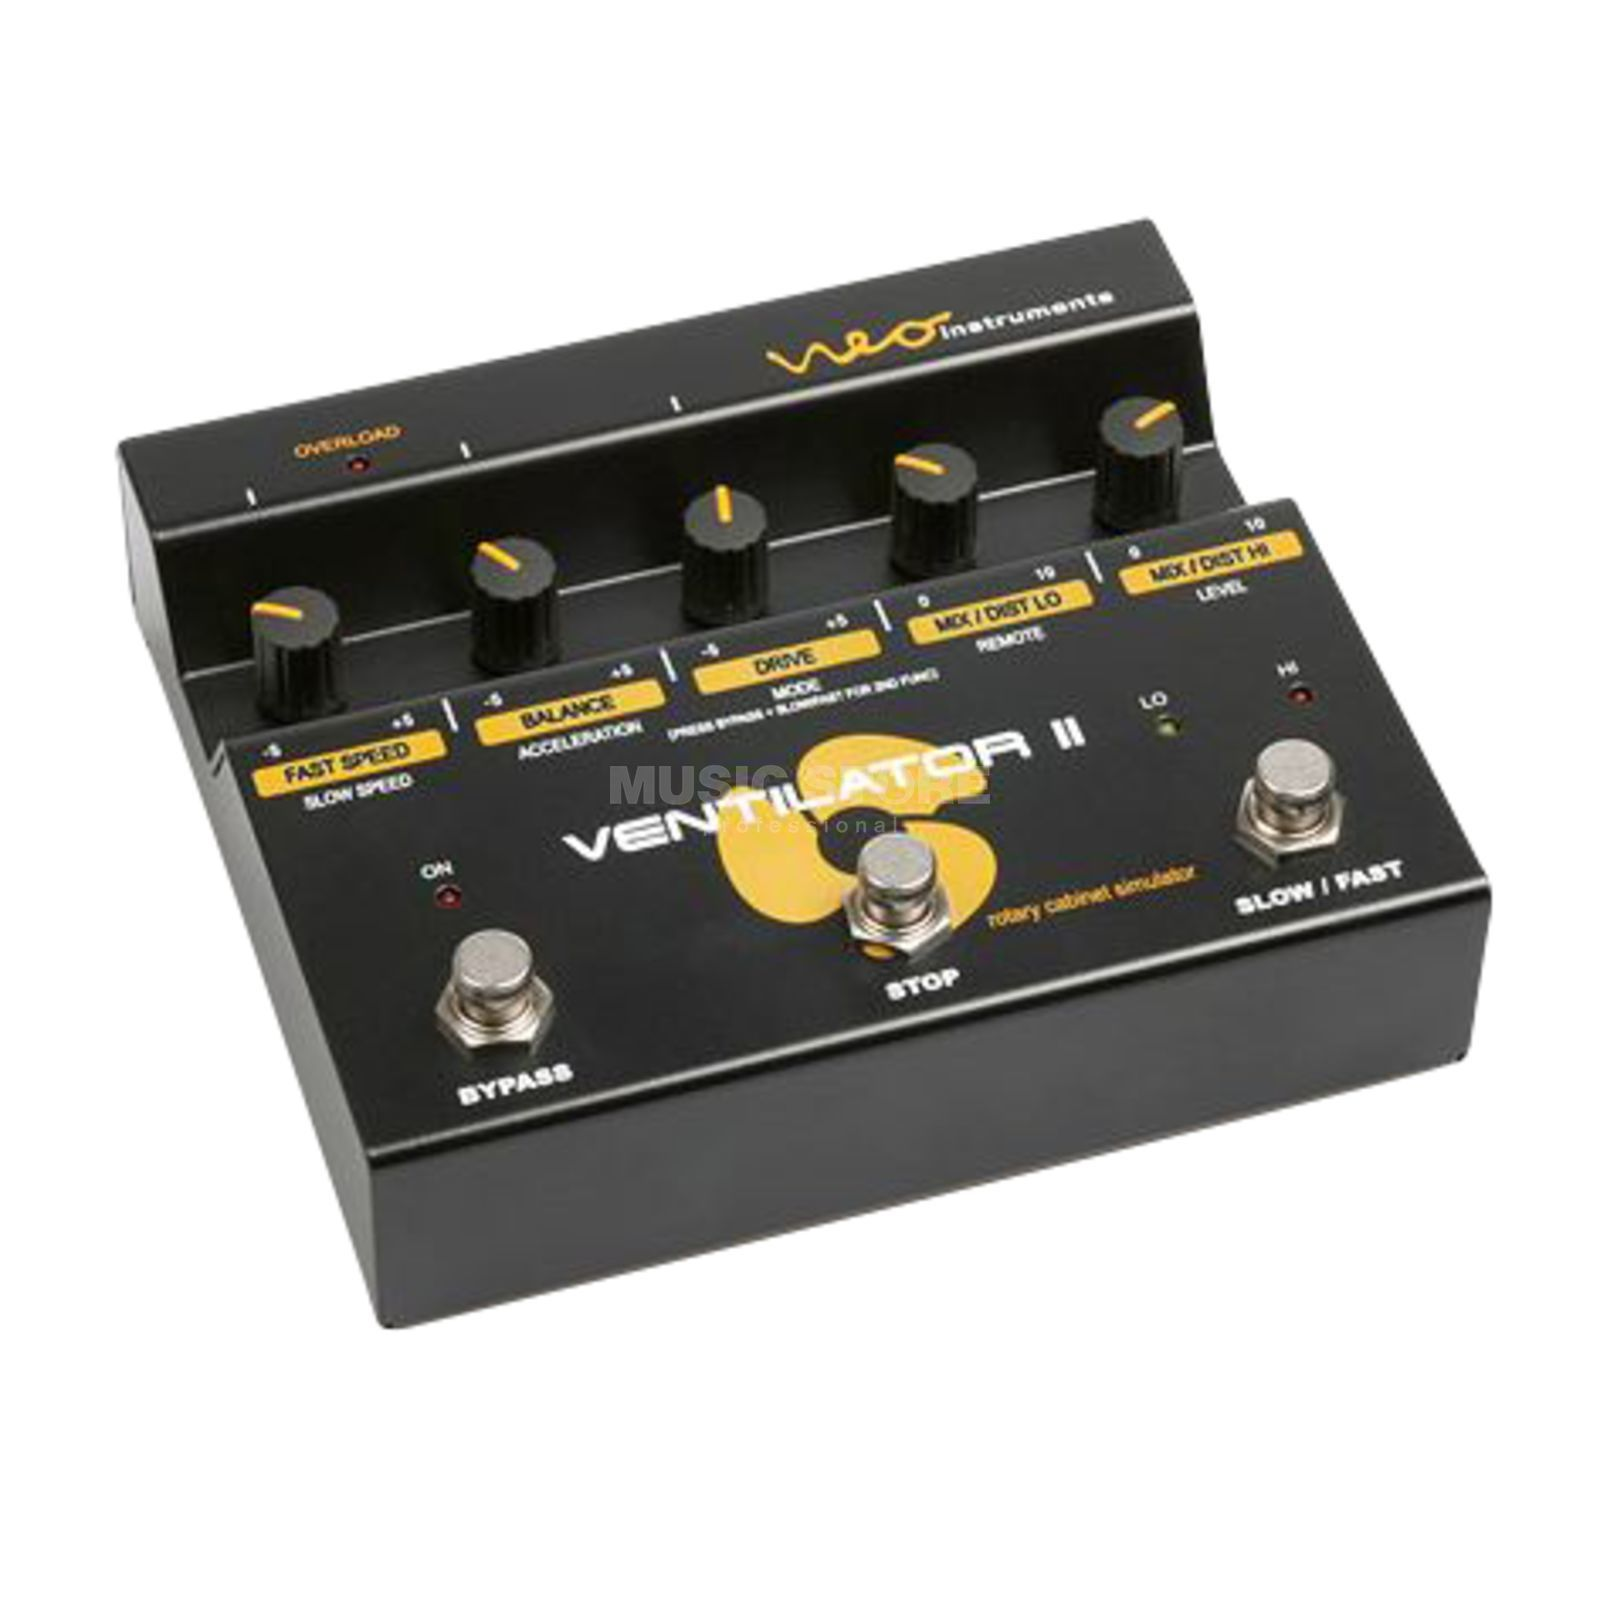 Neo Instruments Ventilator II Rotary Effect Product Image